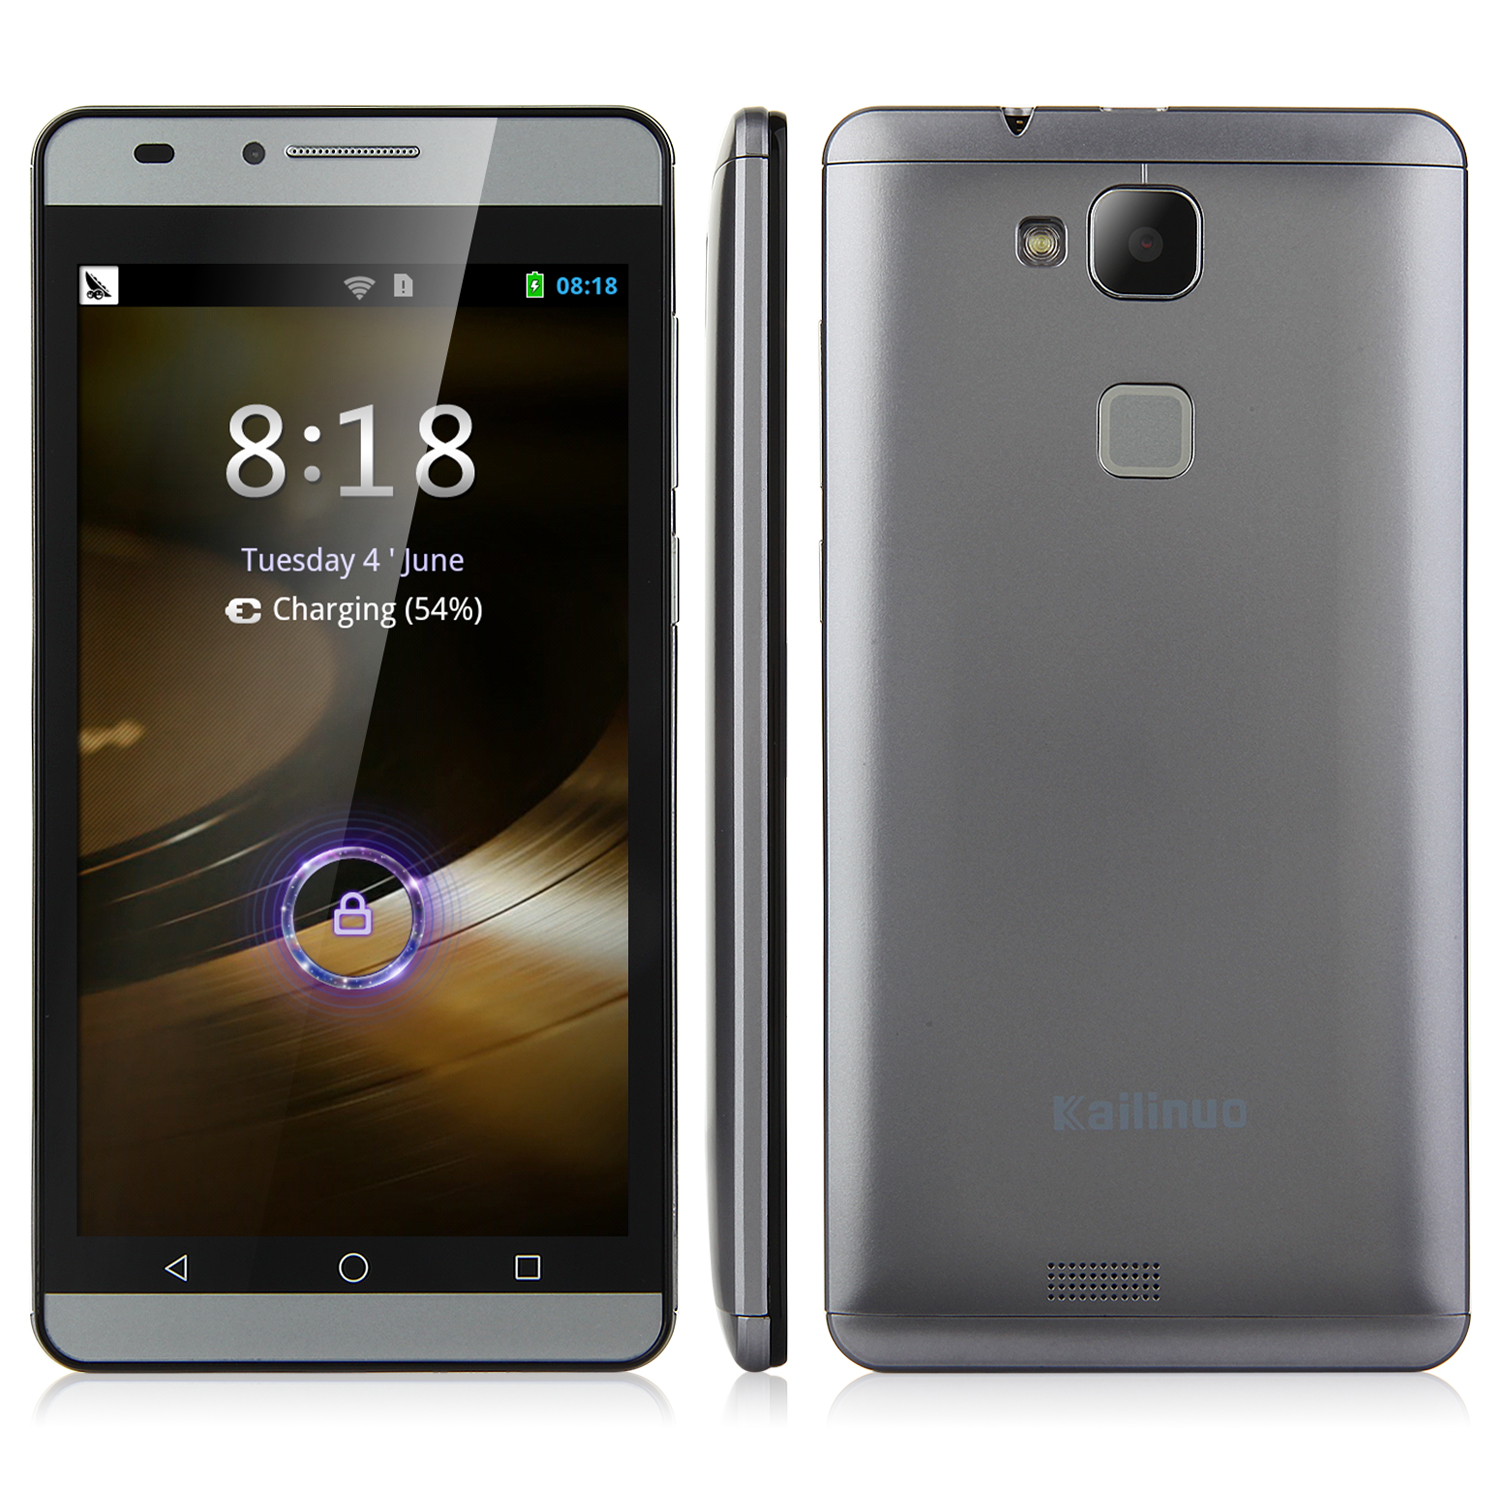 Kailinuo K27 Smartphone 5.0 Inch MTK6572M Dual Core Android 4.2 Grey